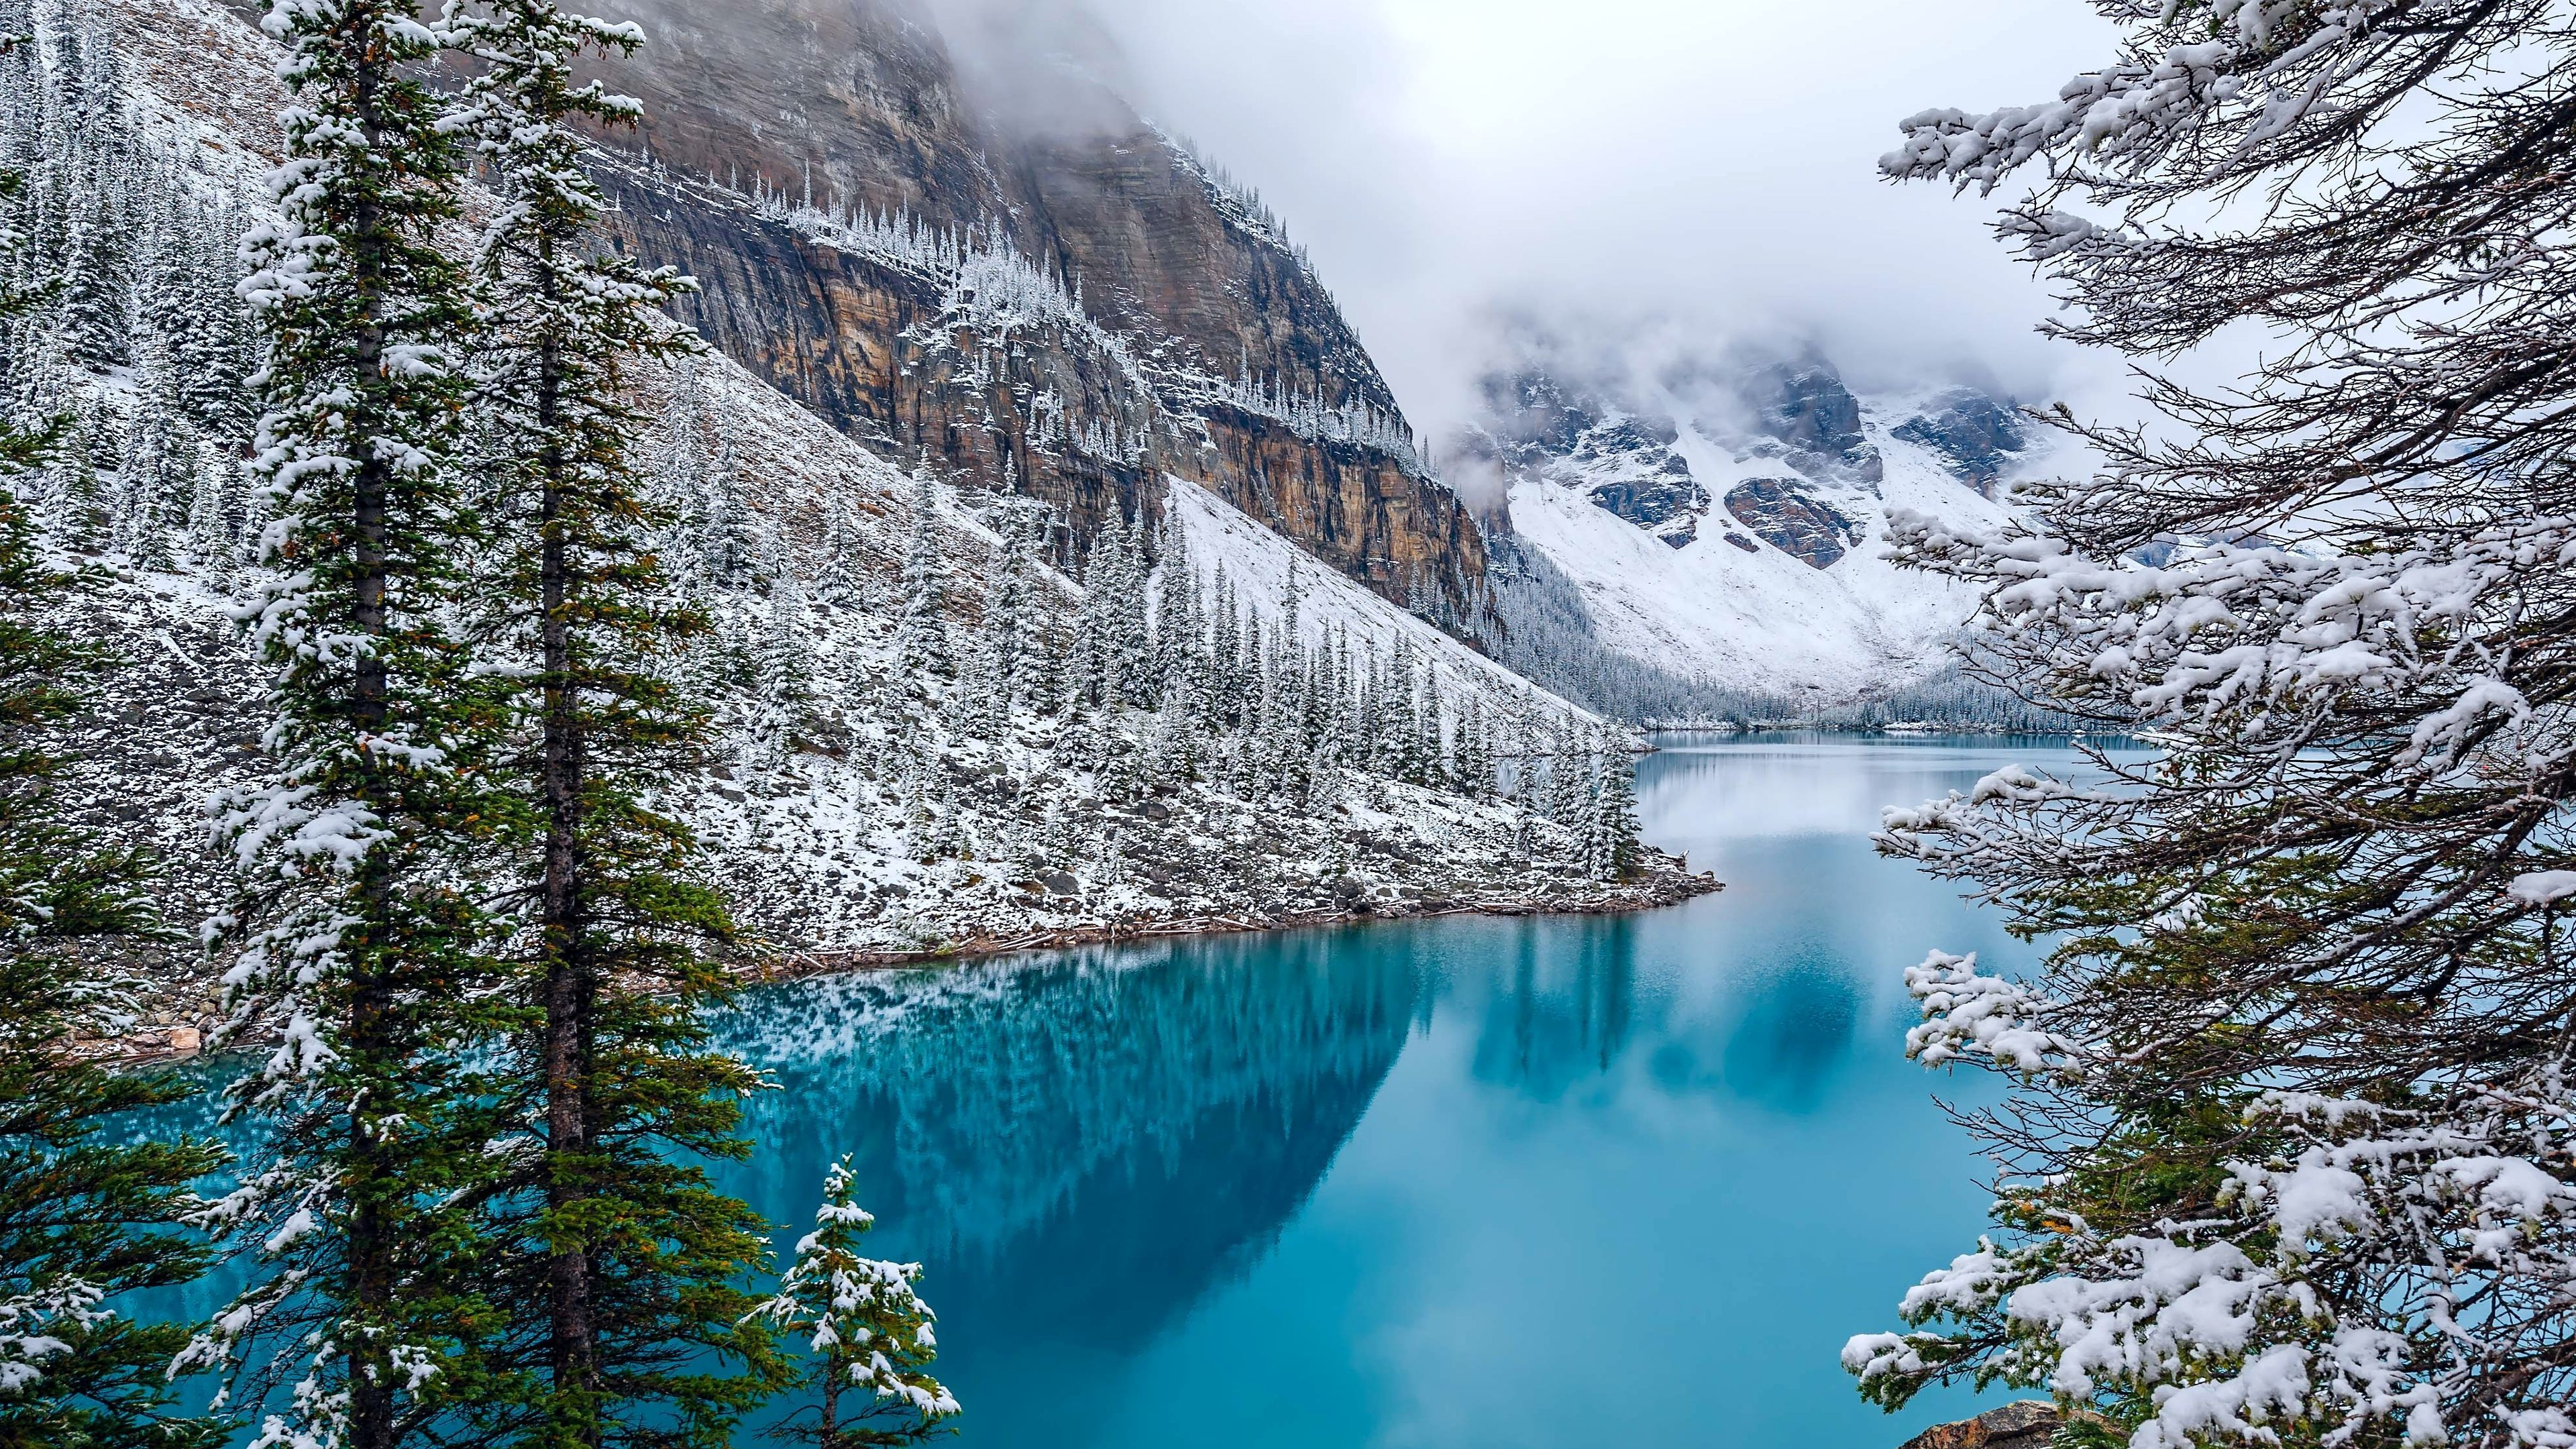 Moraine Lake In Winter 4k Ultra Fondo De Pantalla Hd Fondo